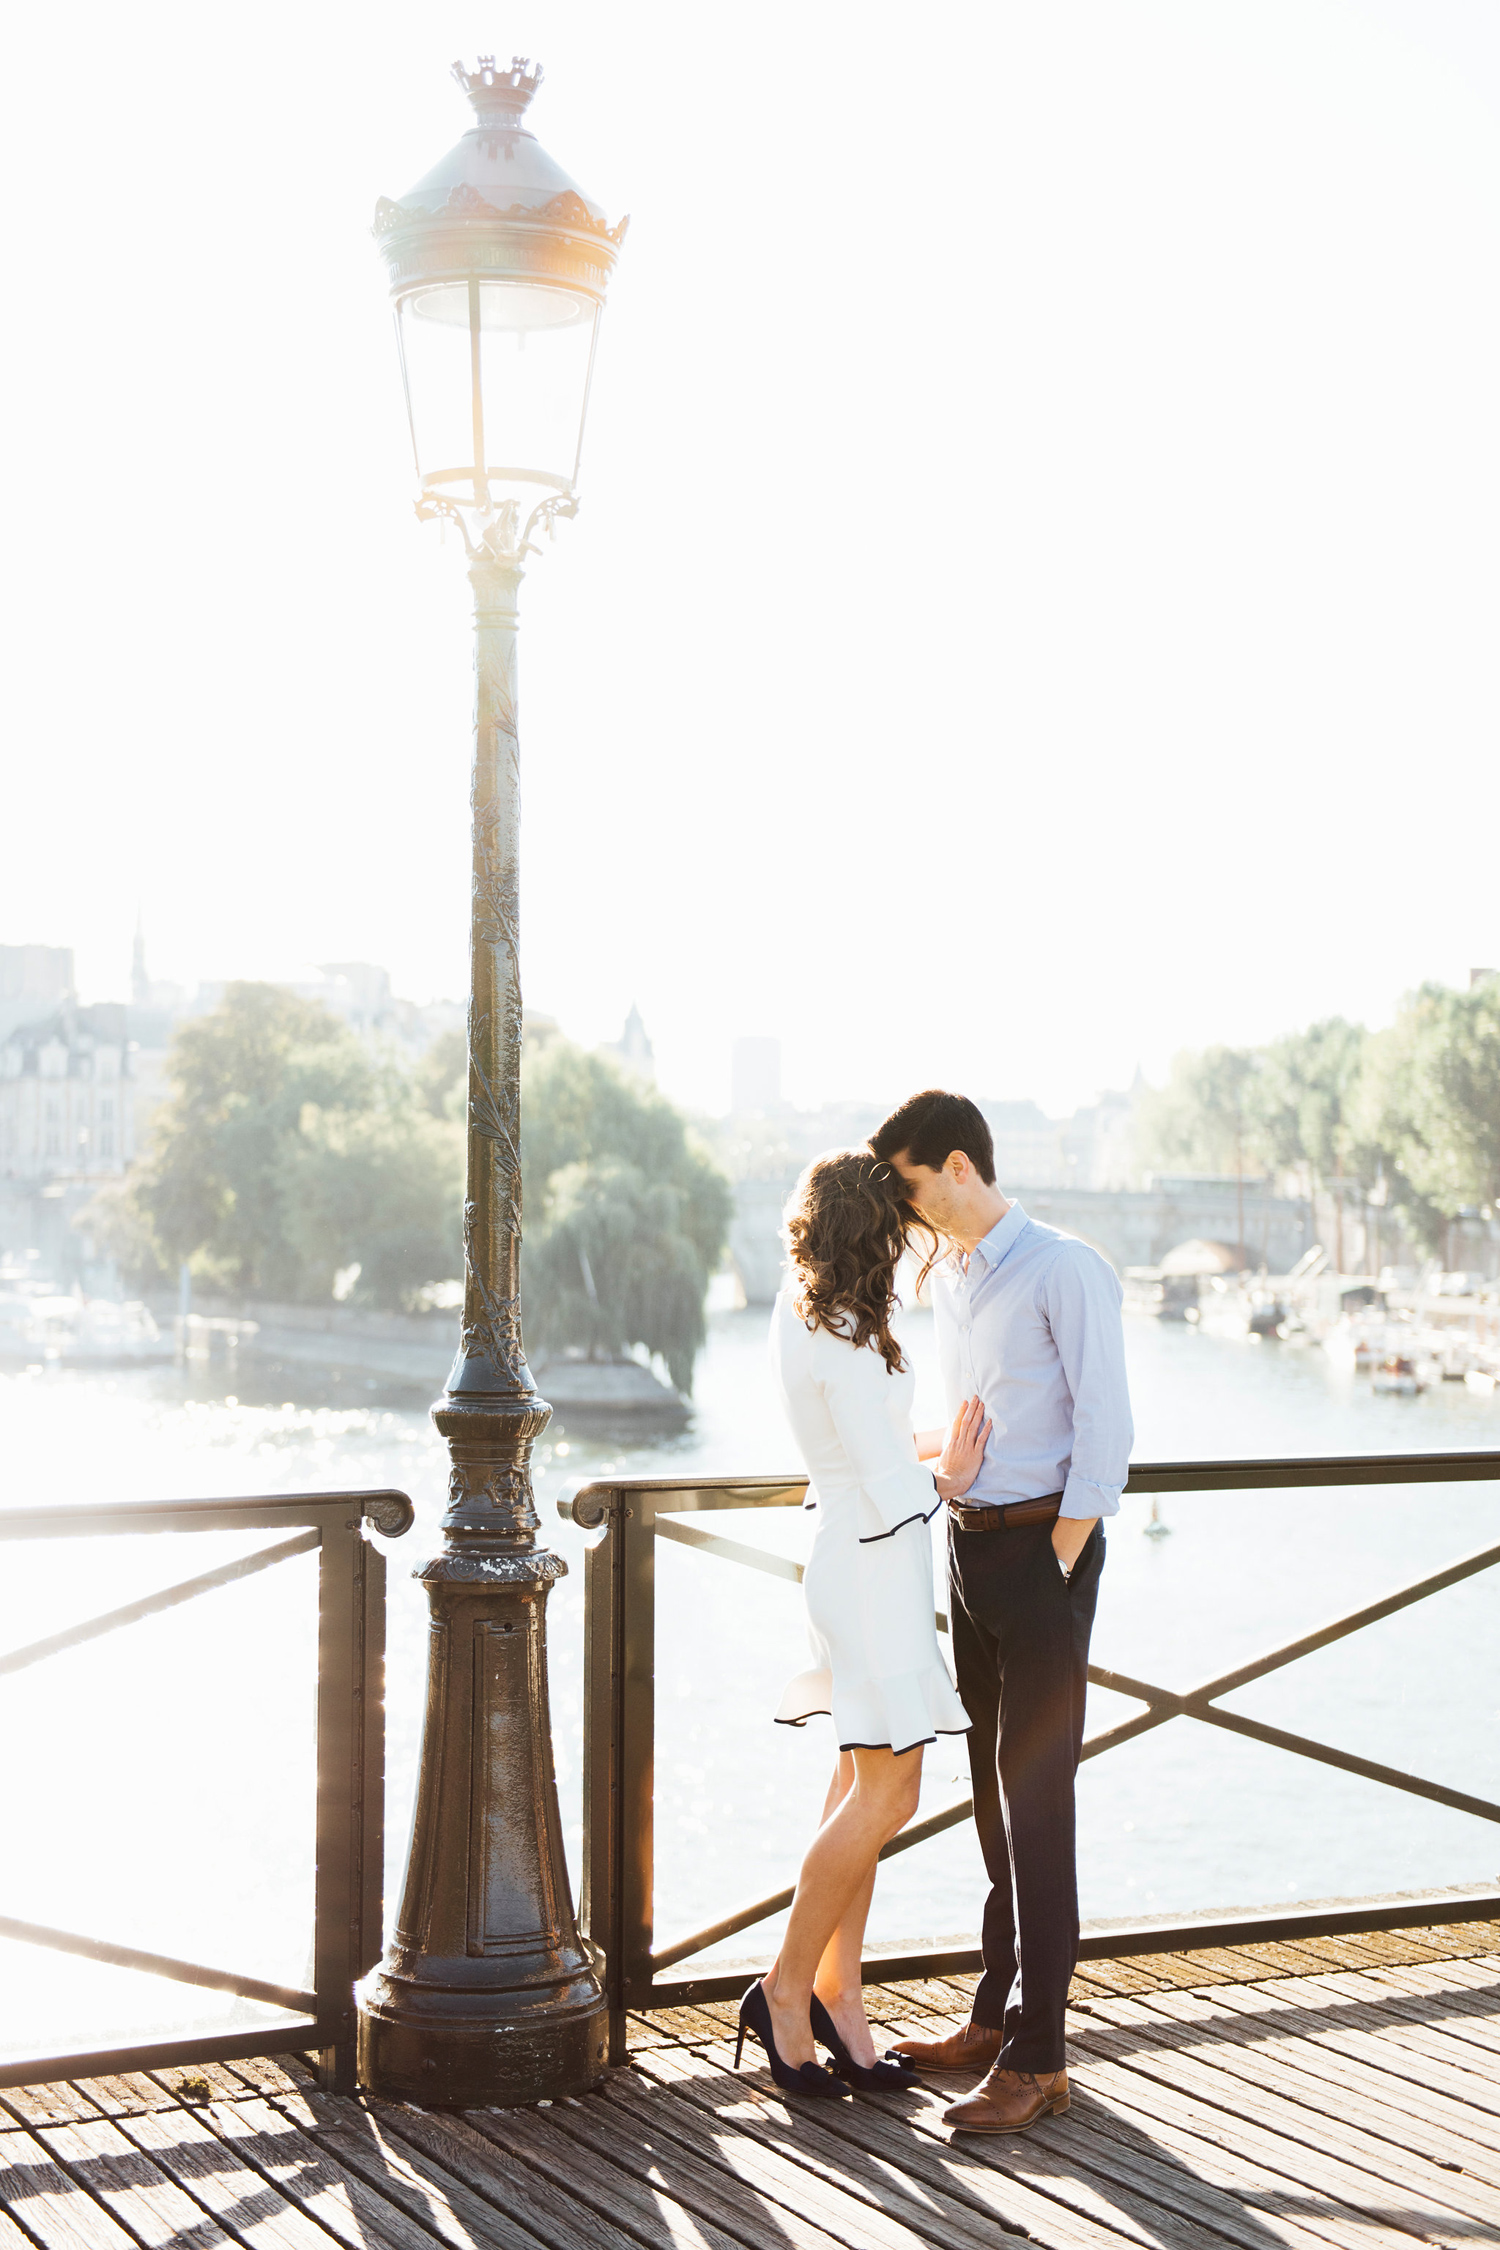 018-katie-mitchell-paris-engagement-photographer-france.jpg